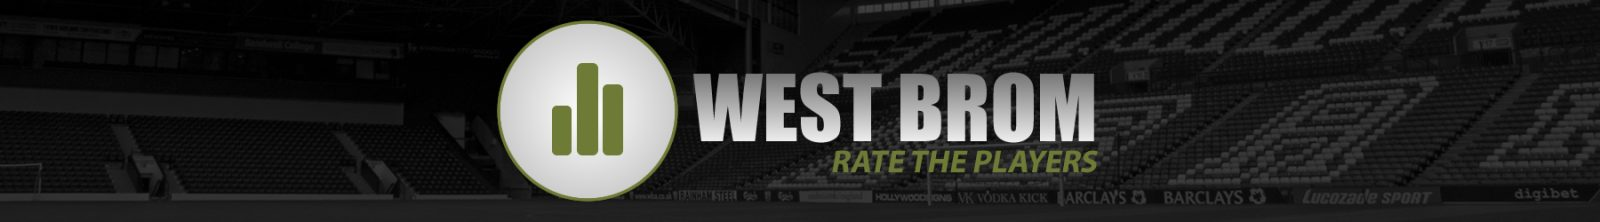 Rate West Brom